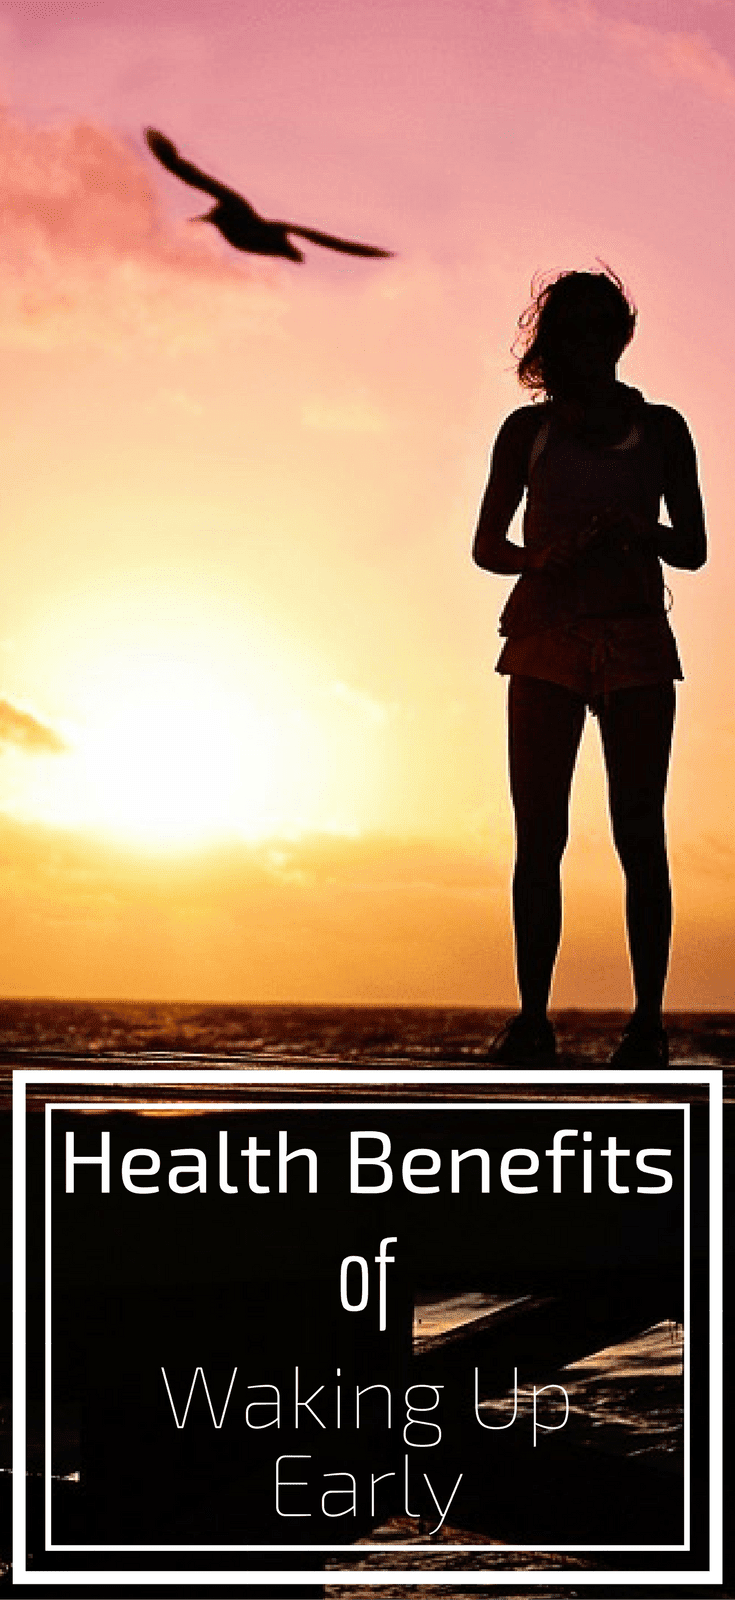 Health Benefits Of Waking Up Early